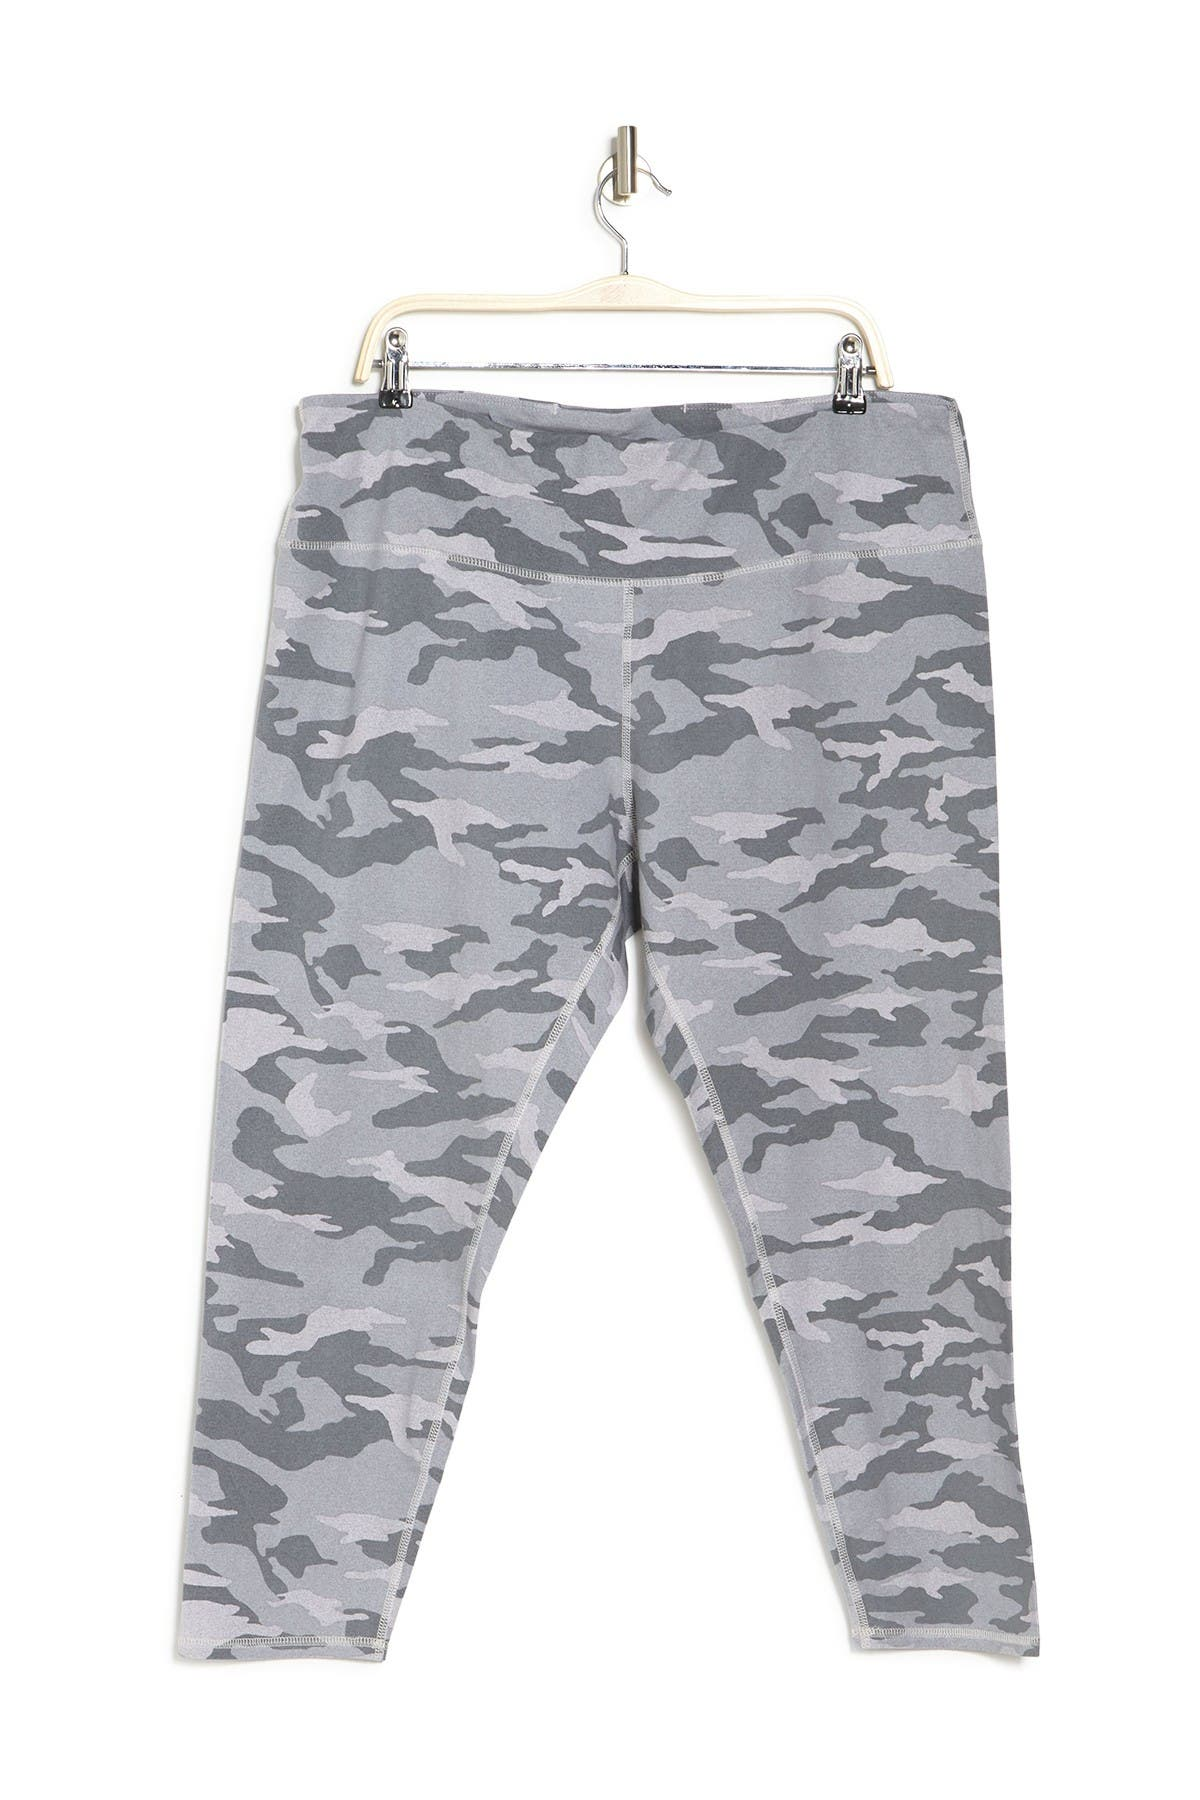 Image of Philosophy Apparel Pull-On Printed Leggings w/ Wide Waist Band